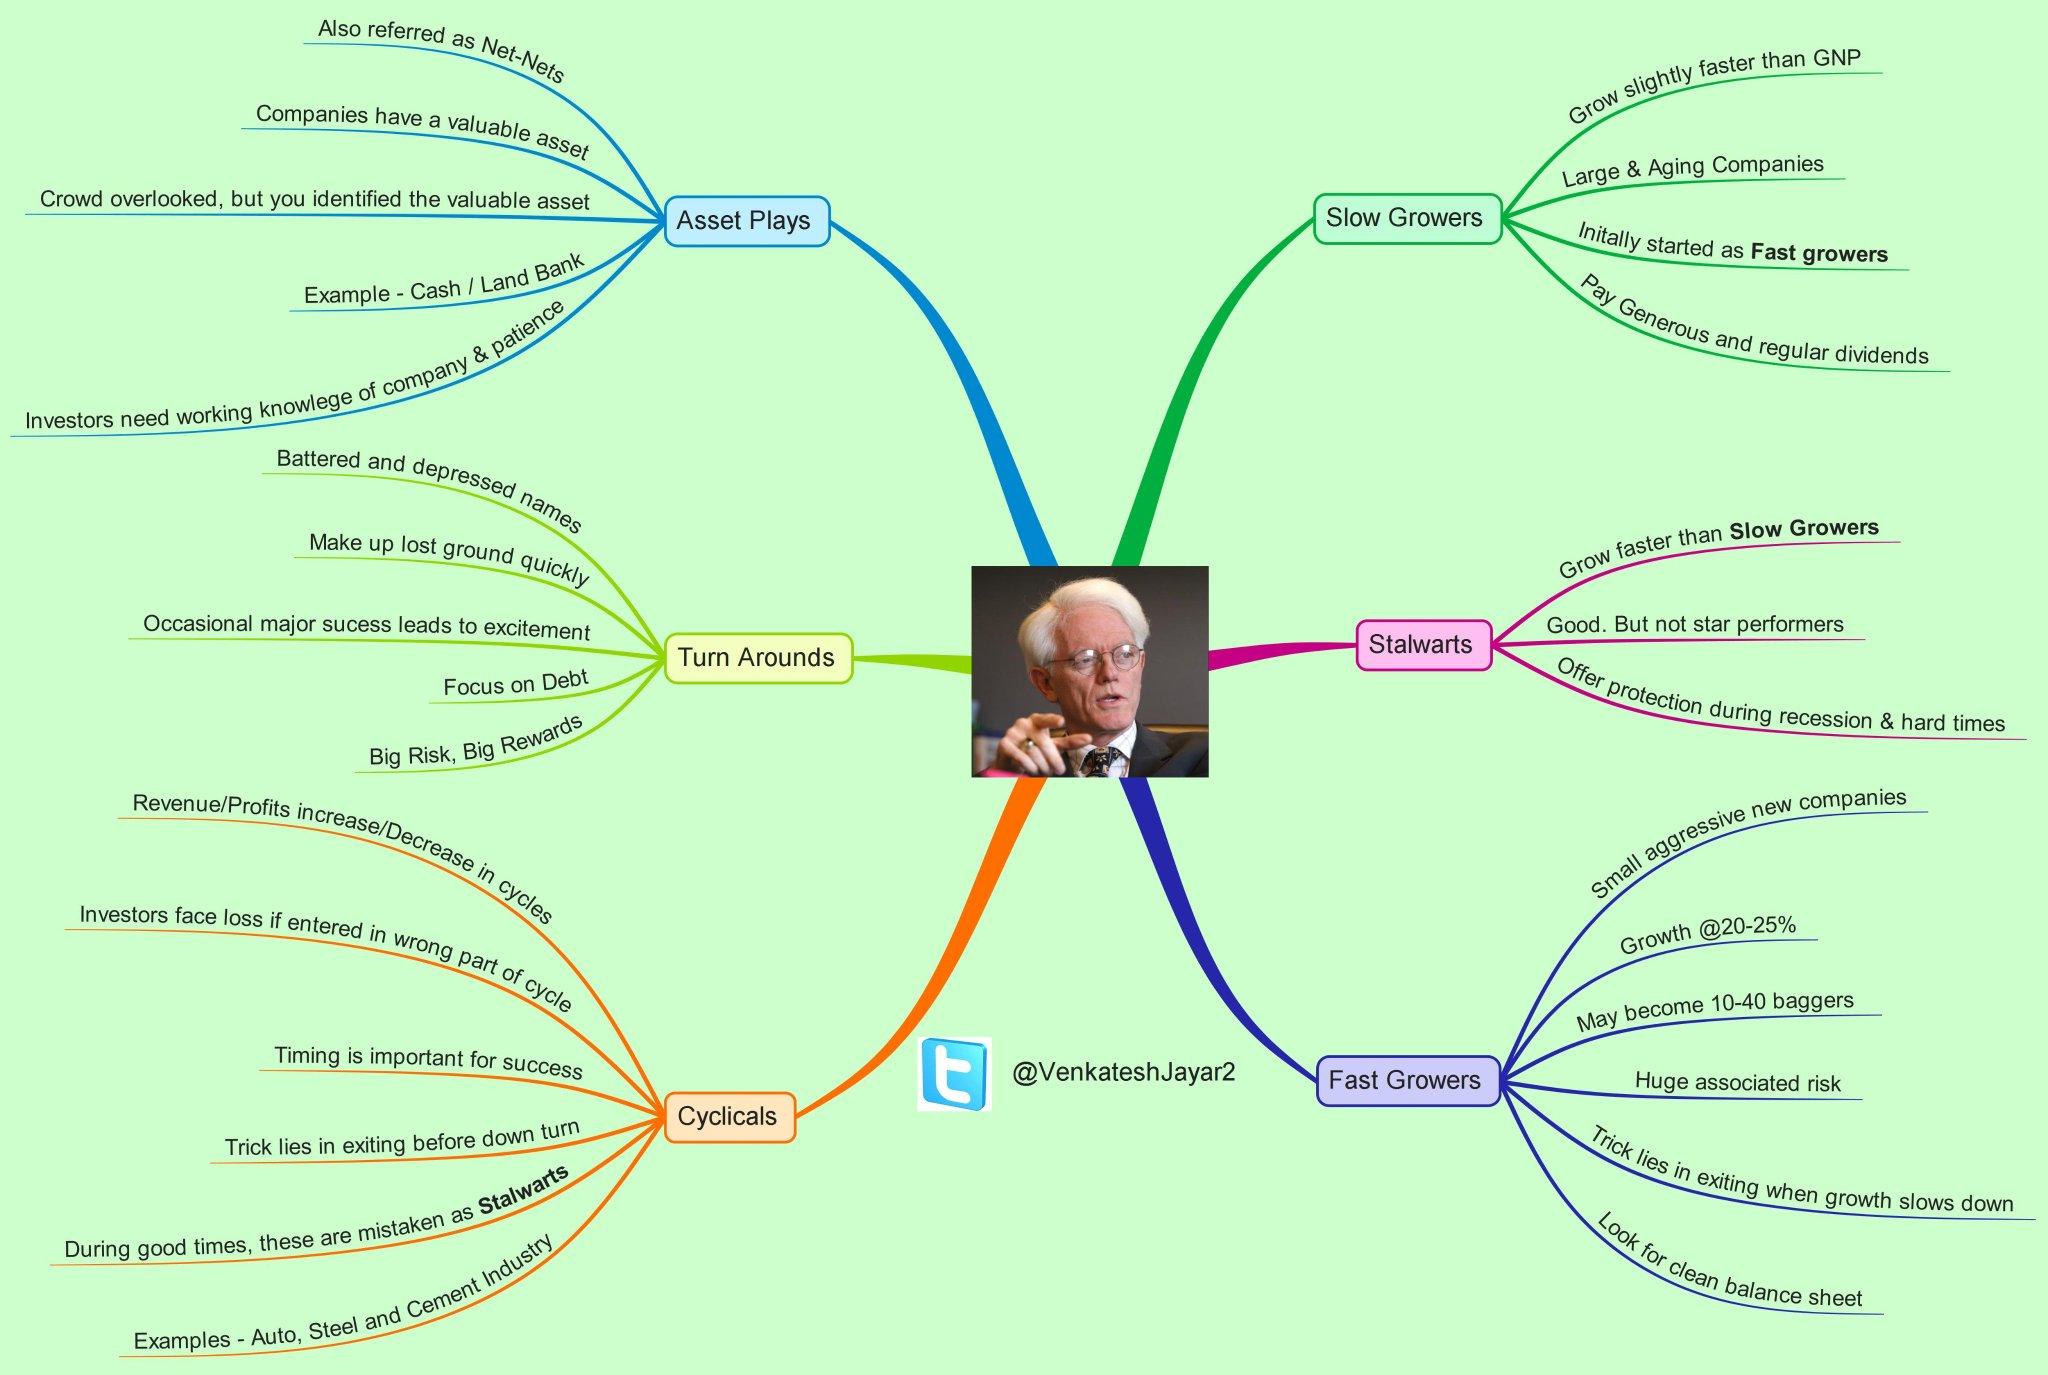 PETER LYNCH 6 CATEGORY OF COMPANIES  @equitree made in Mindmap https://t.co/jyfvzx7FEq